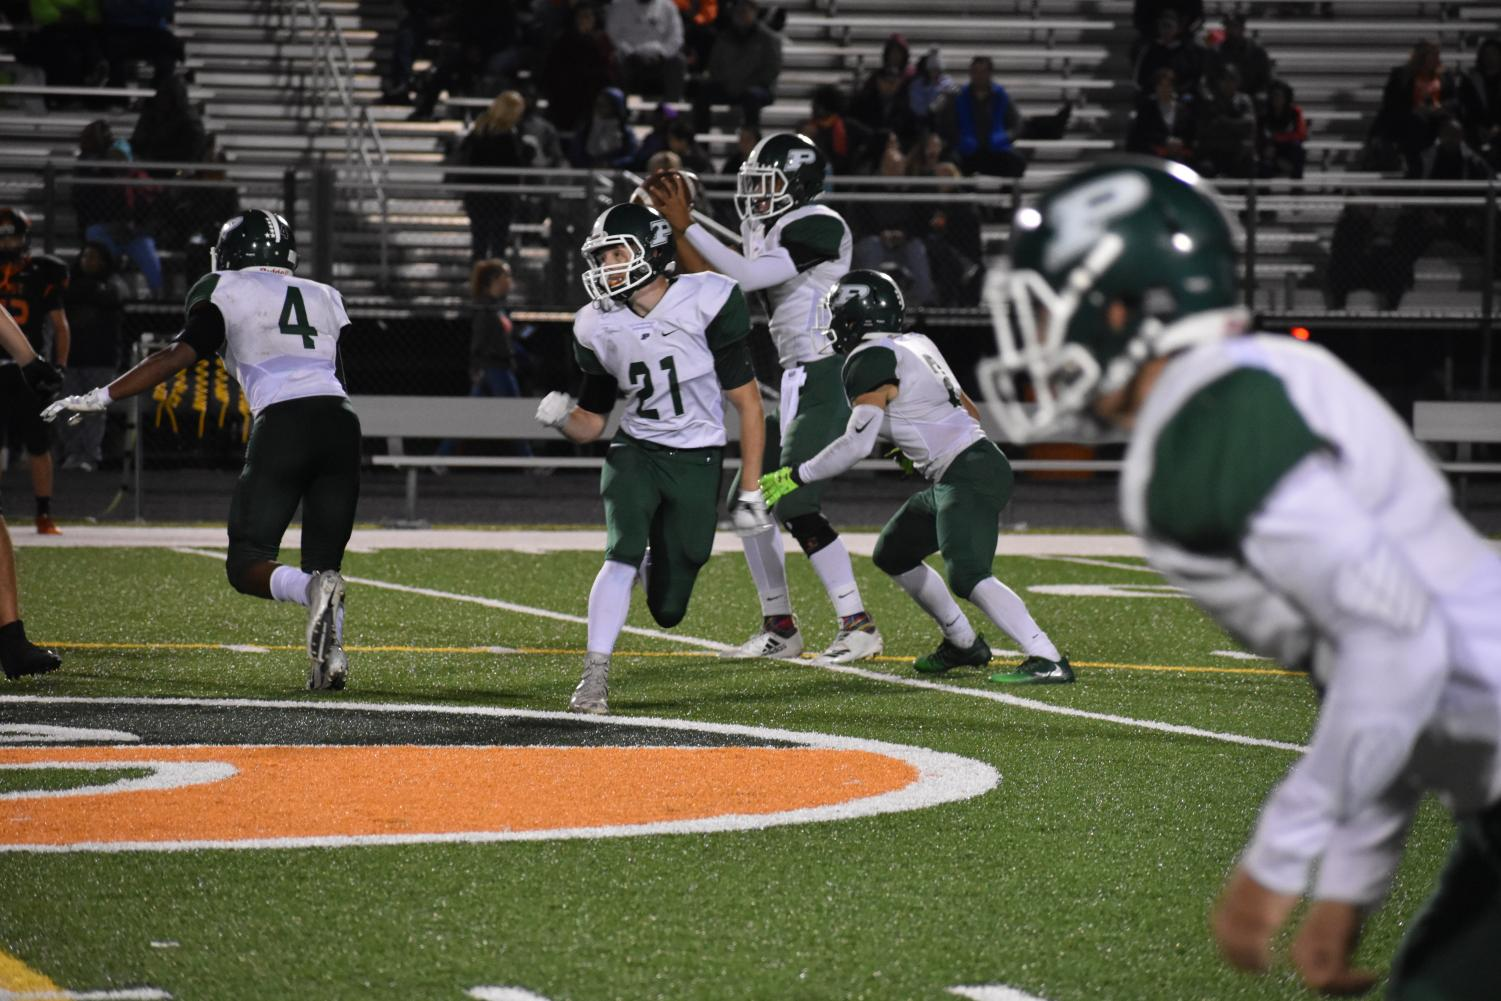 Senior Justin Lentz, #21, runs a route to get open to receive a pass from quarterback Nick Barner, senior.